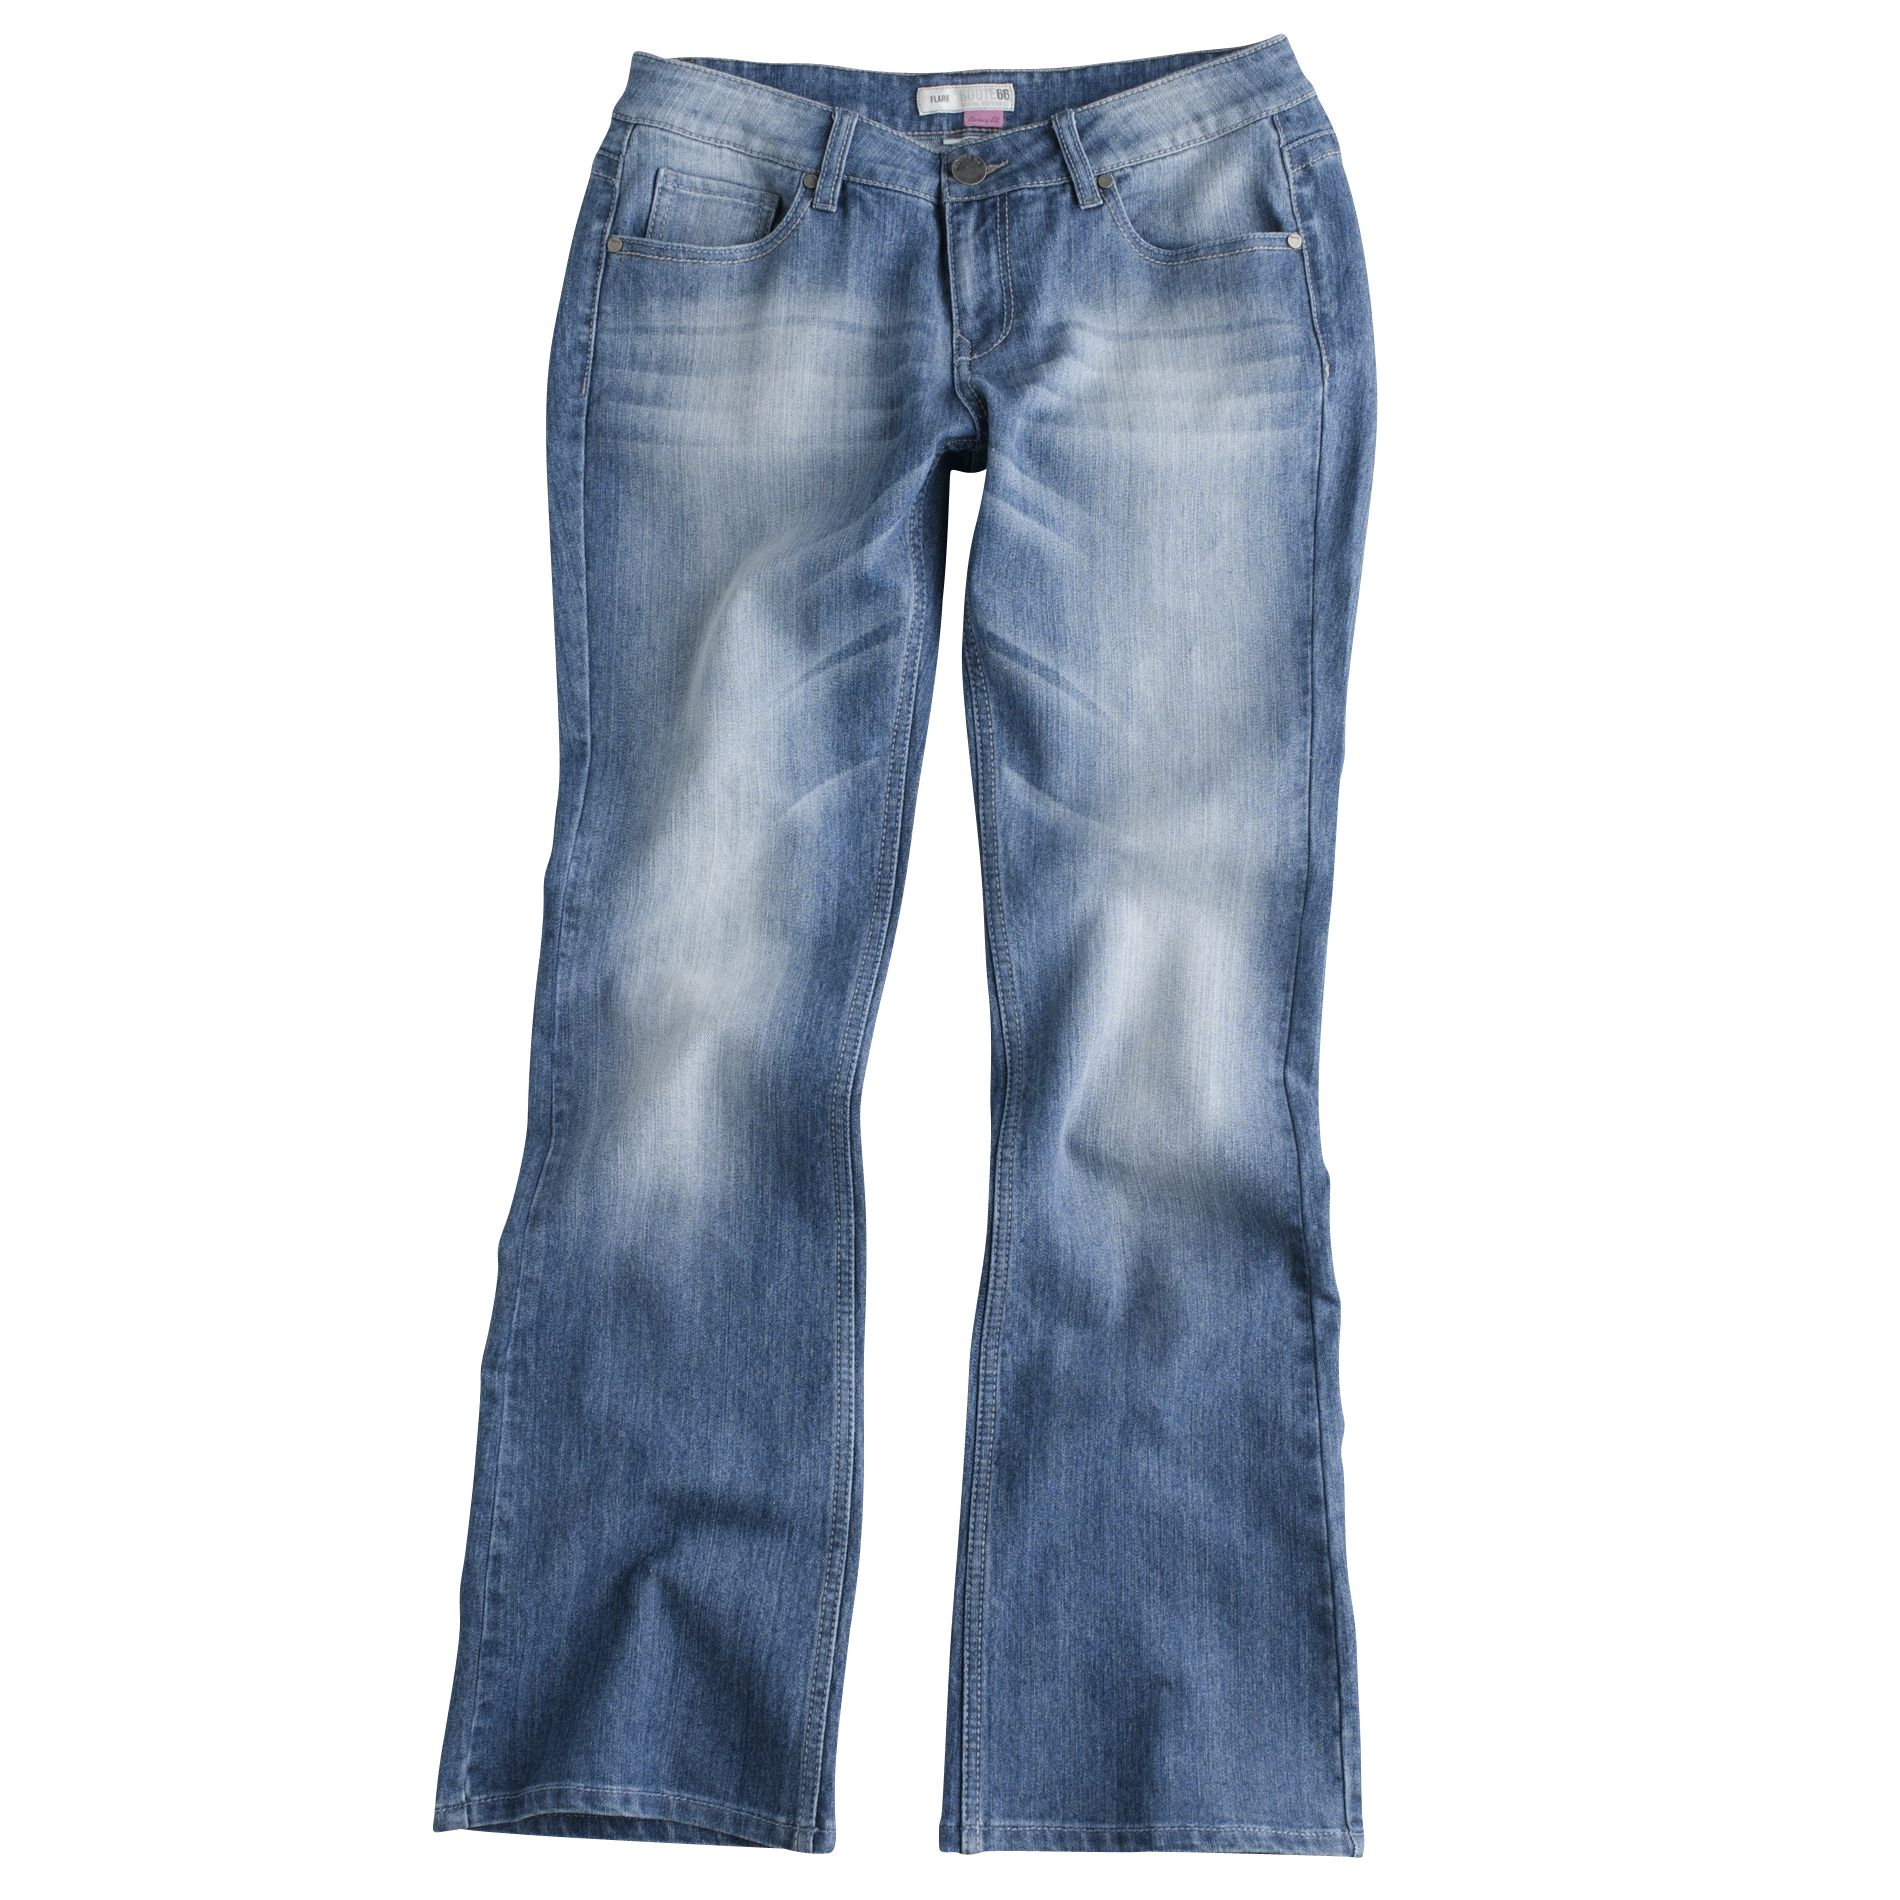 Route 66 Women's Flare Leg Jeans at Kmart.com